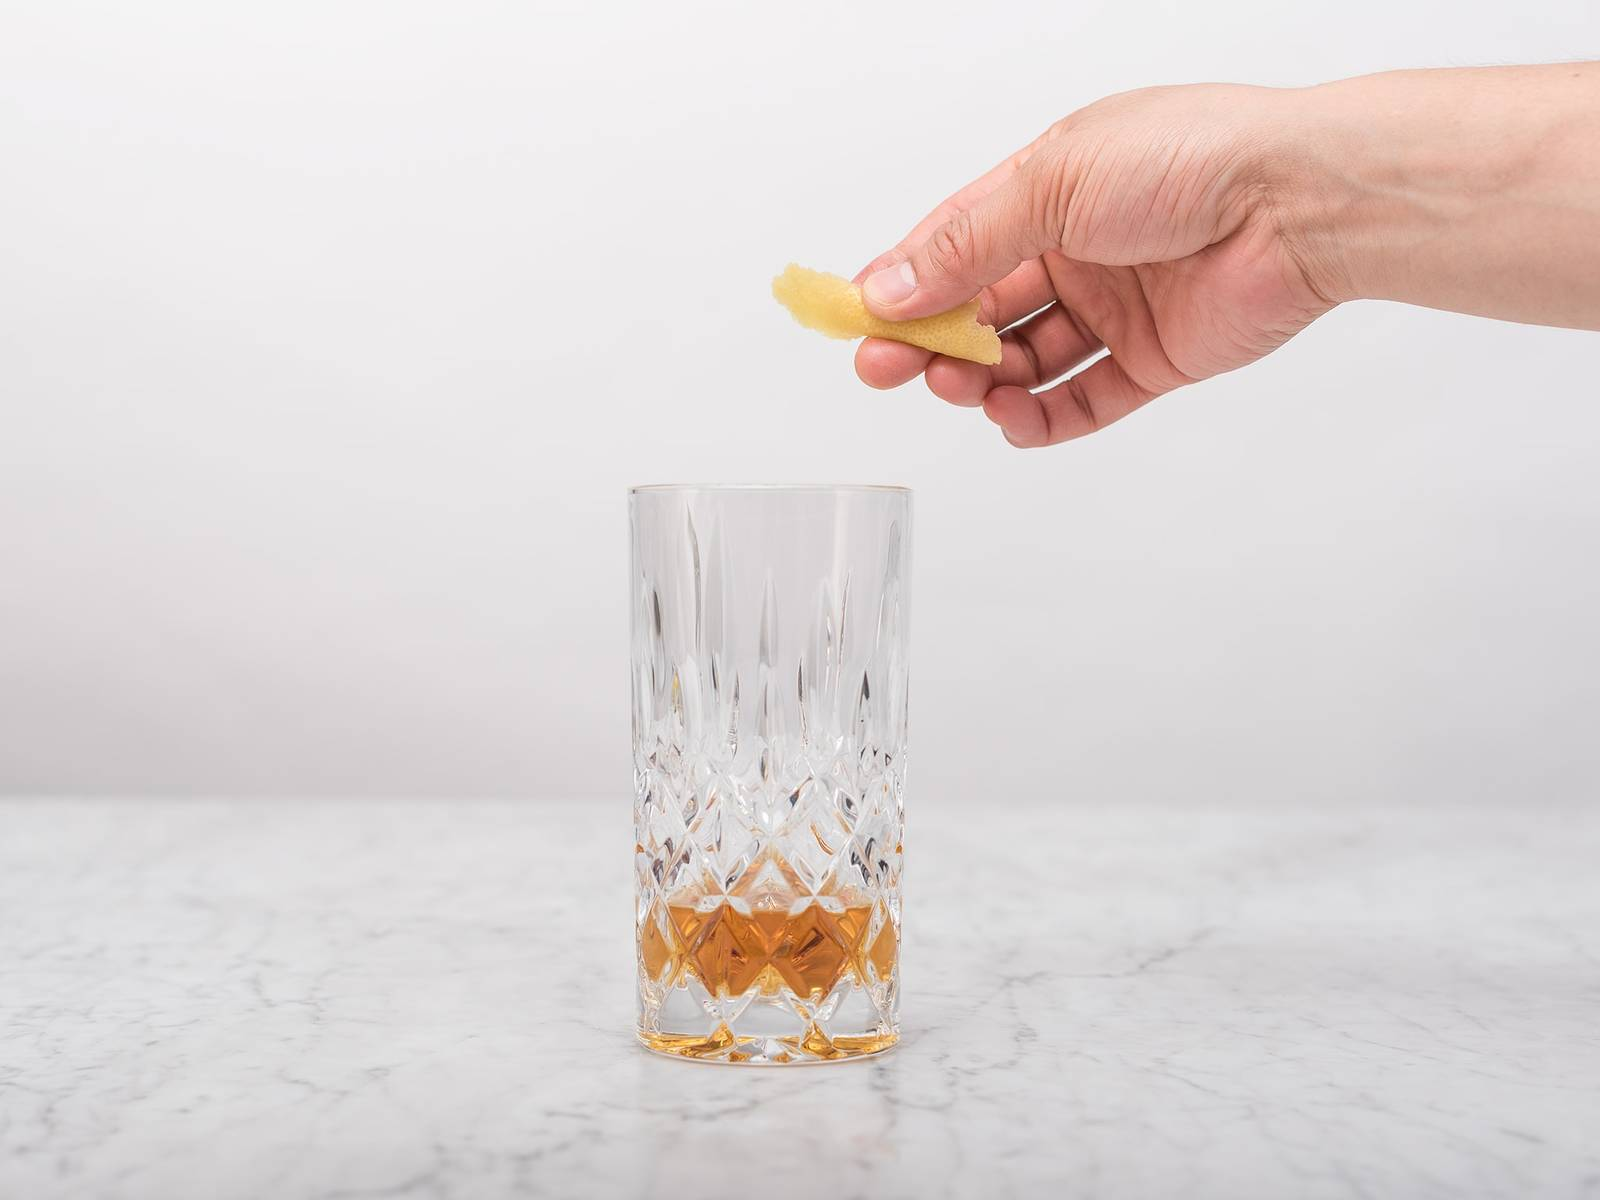 Peel three lemon rinds for each glass, spritz on the rim of the glass, then place peels in glass.